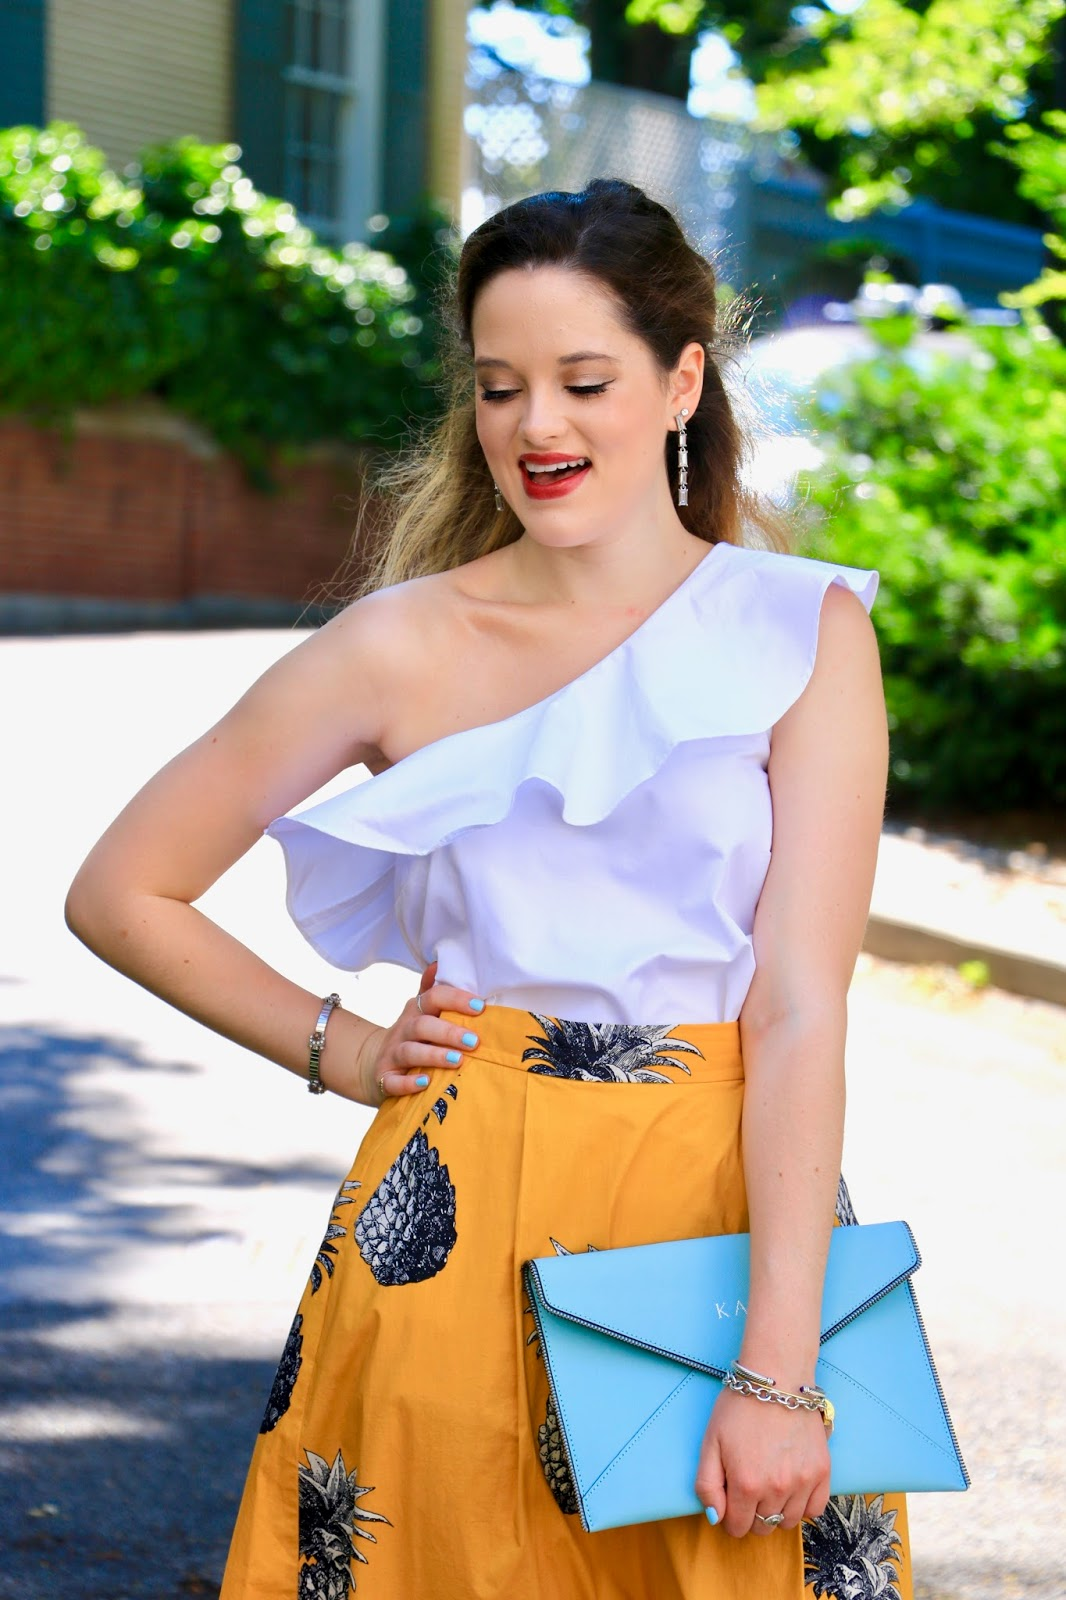 nyc fashion blogger kathleen harper showing off summer style